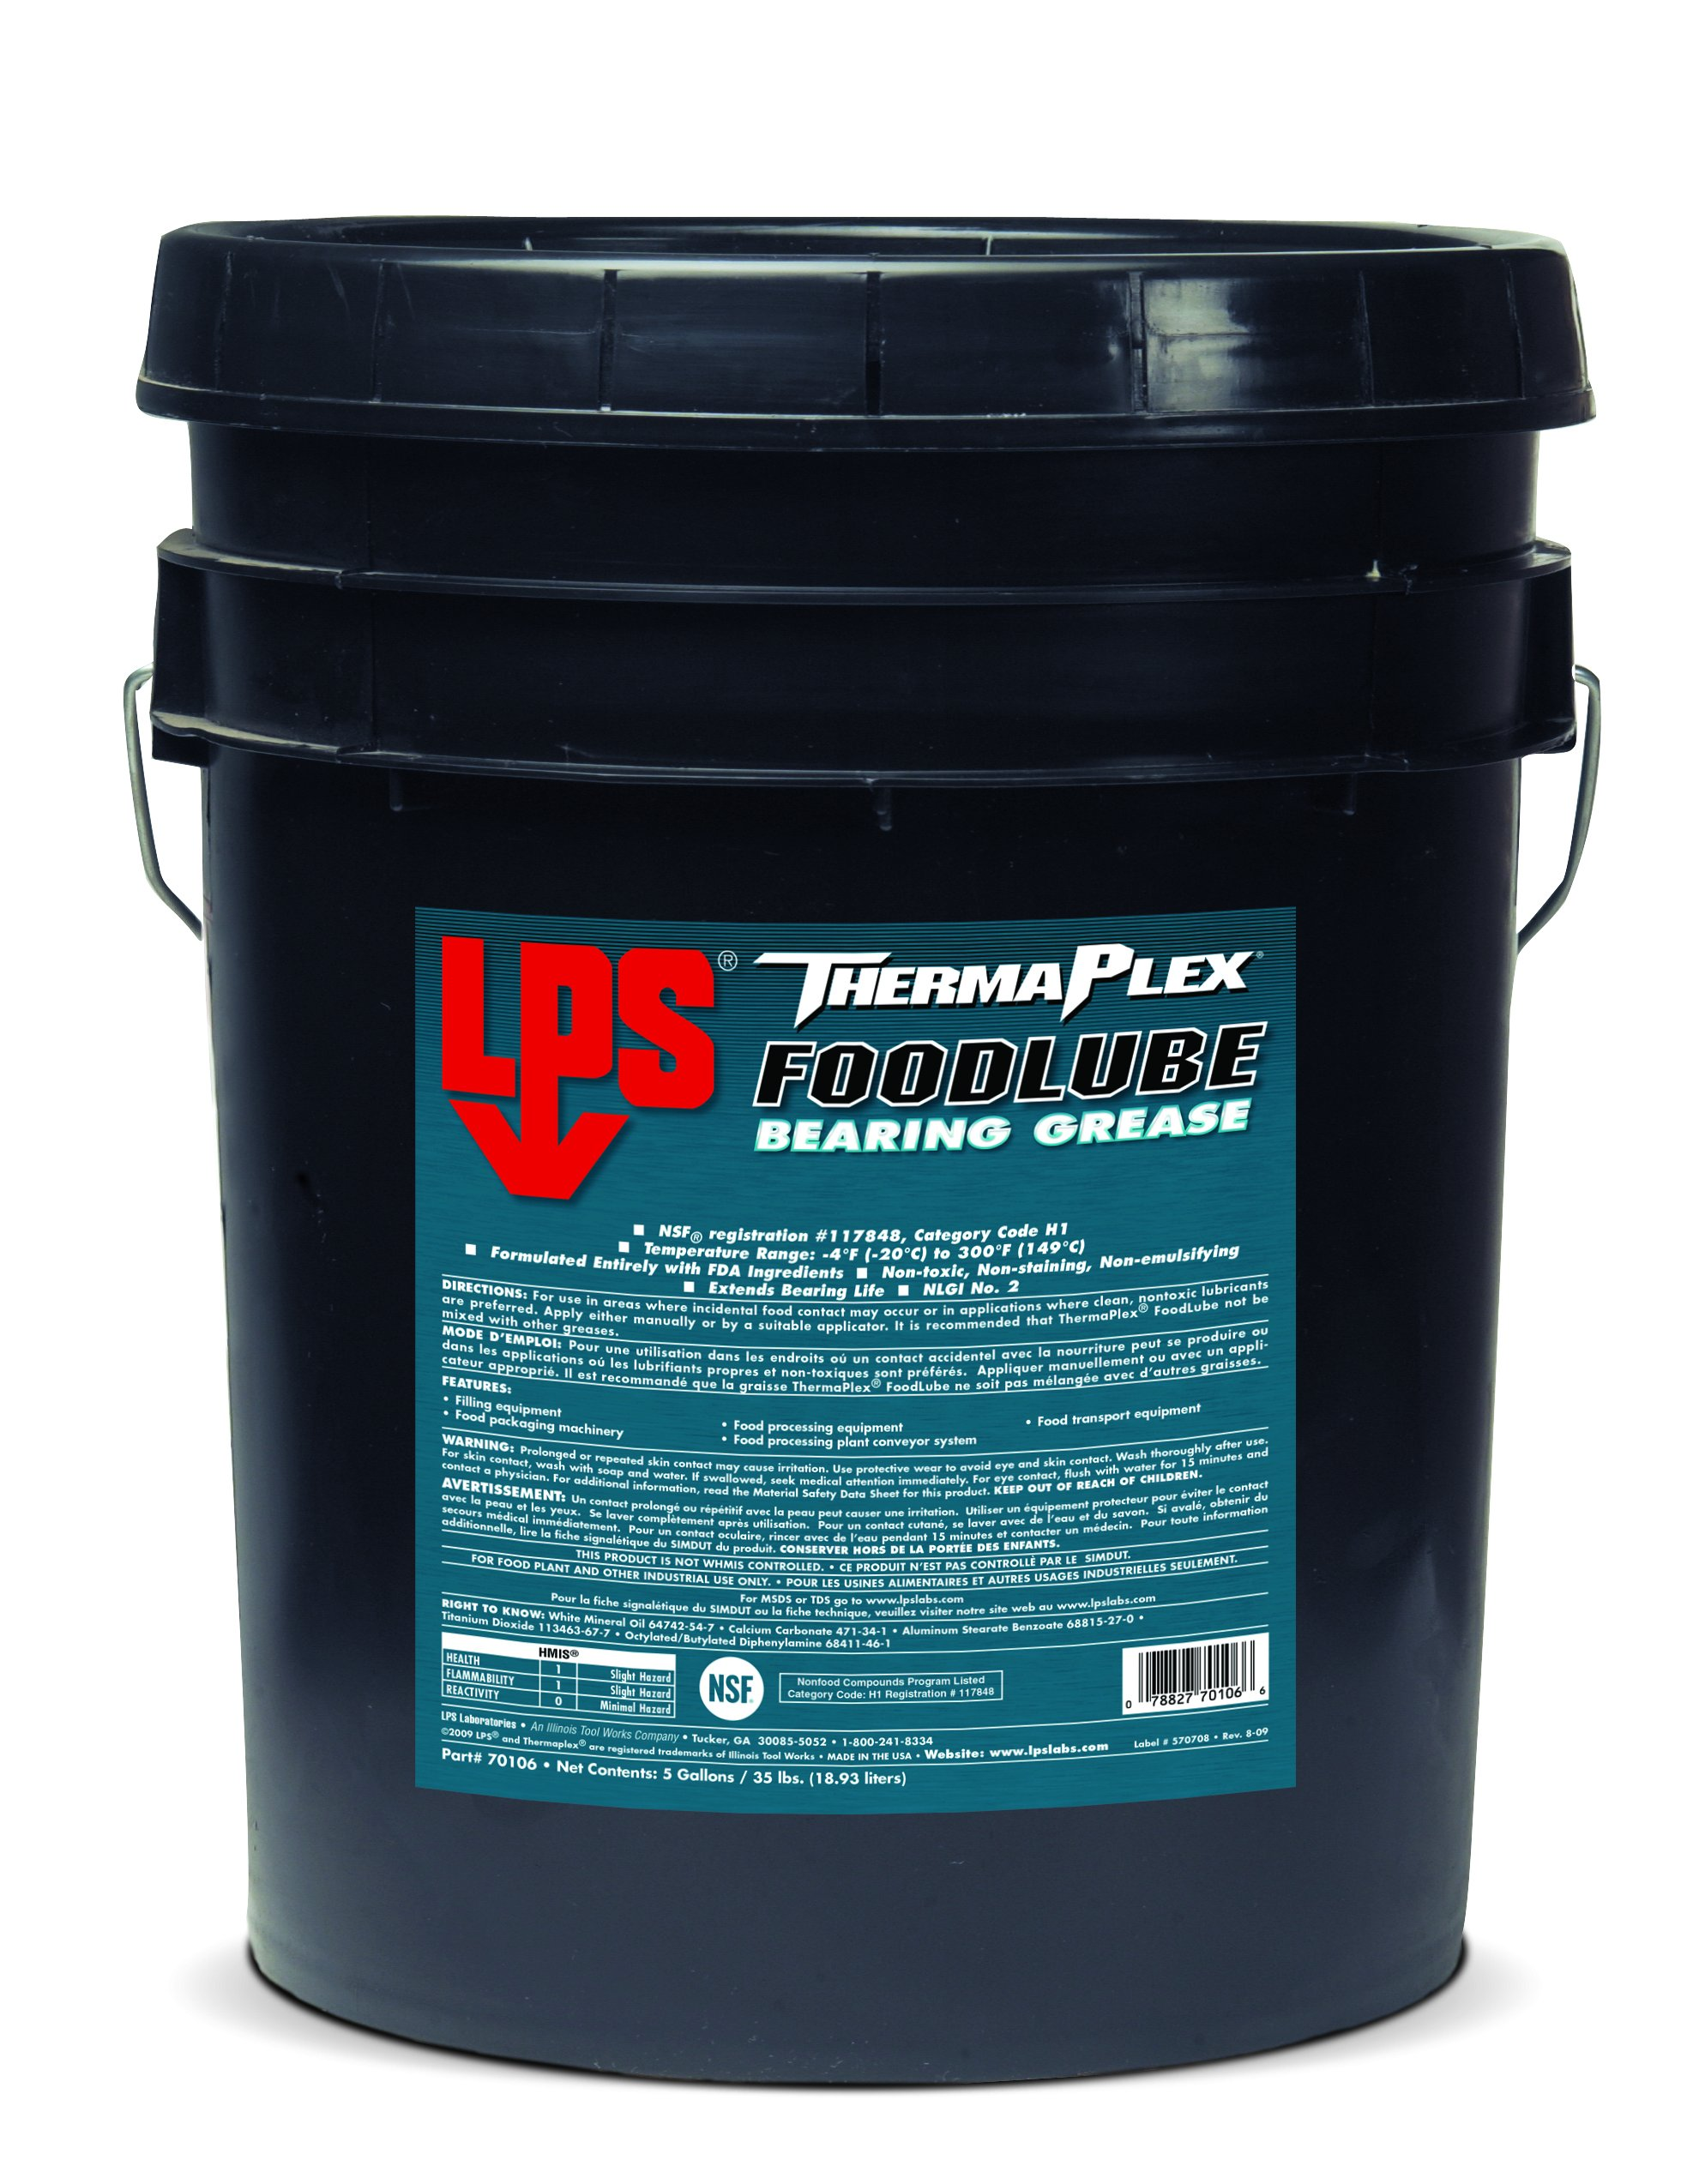 LPS ThermaPlex FoodLube Bearing Grease, 35 lbs